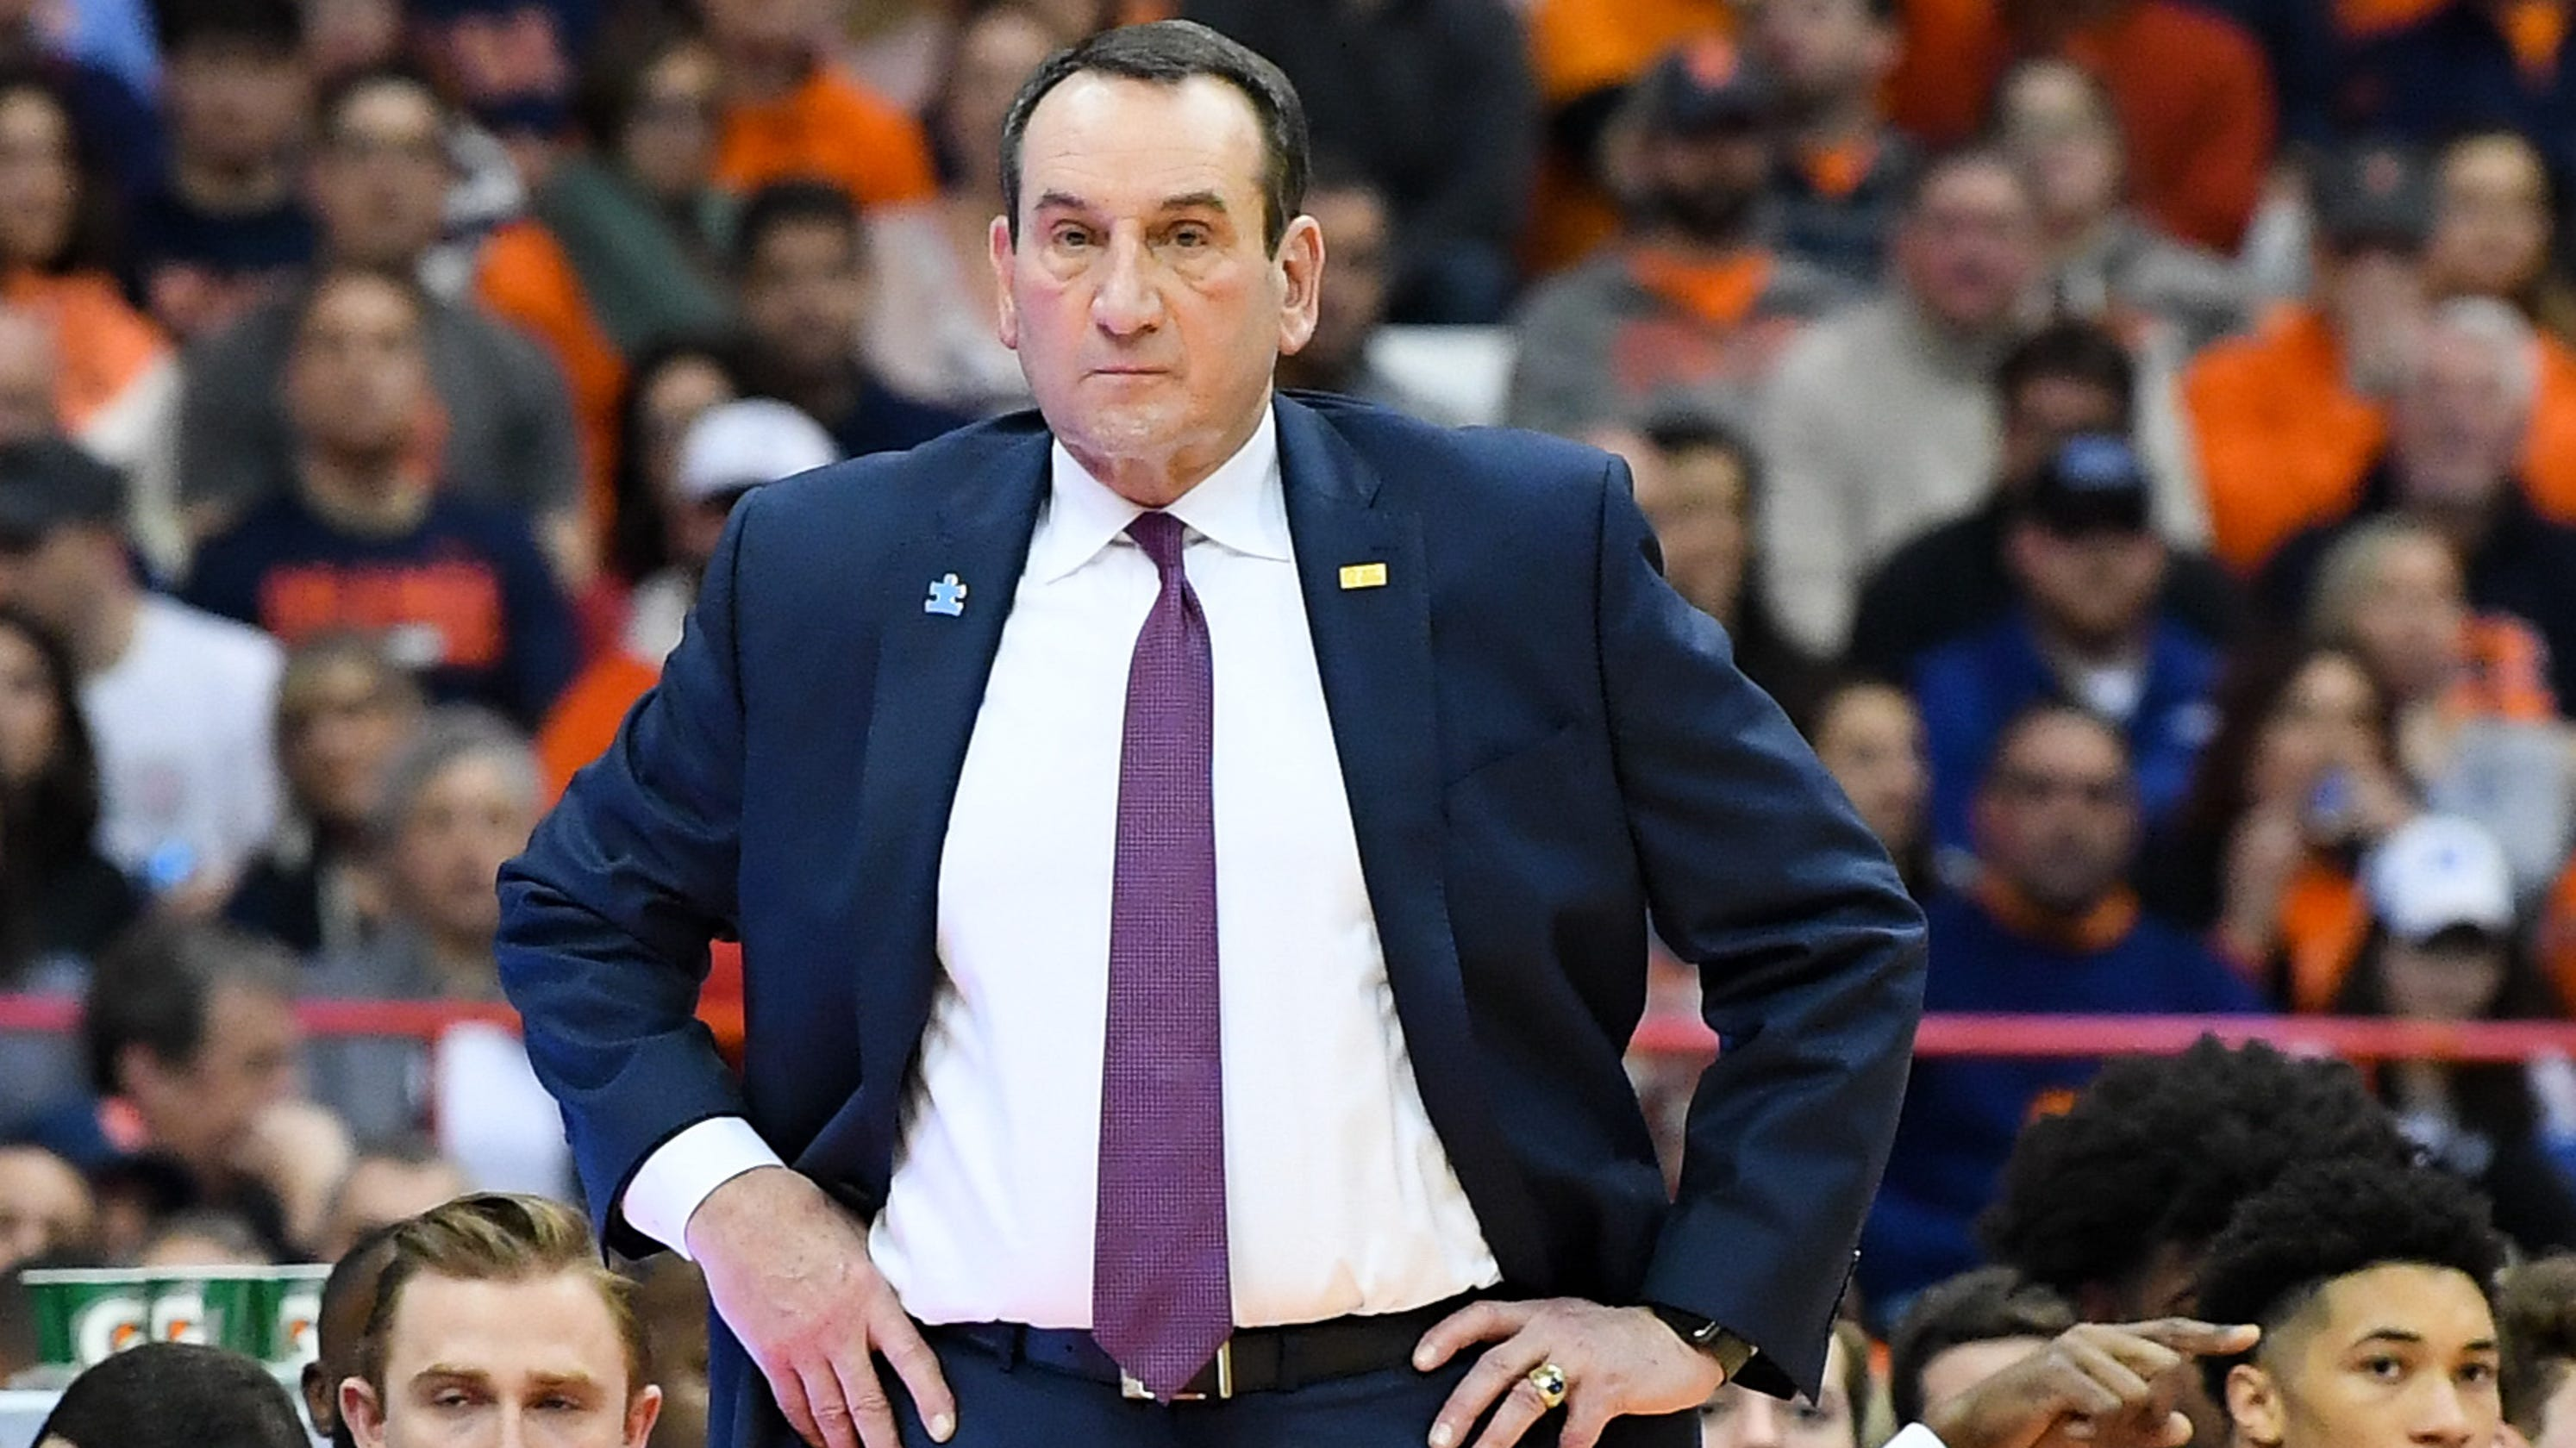 Duke coach Mike Krzyzewski records powerful Black Lives Matter video